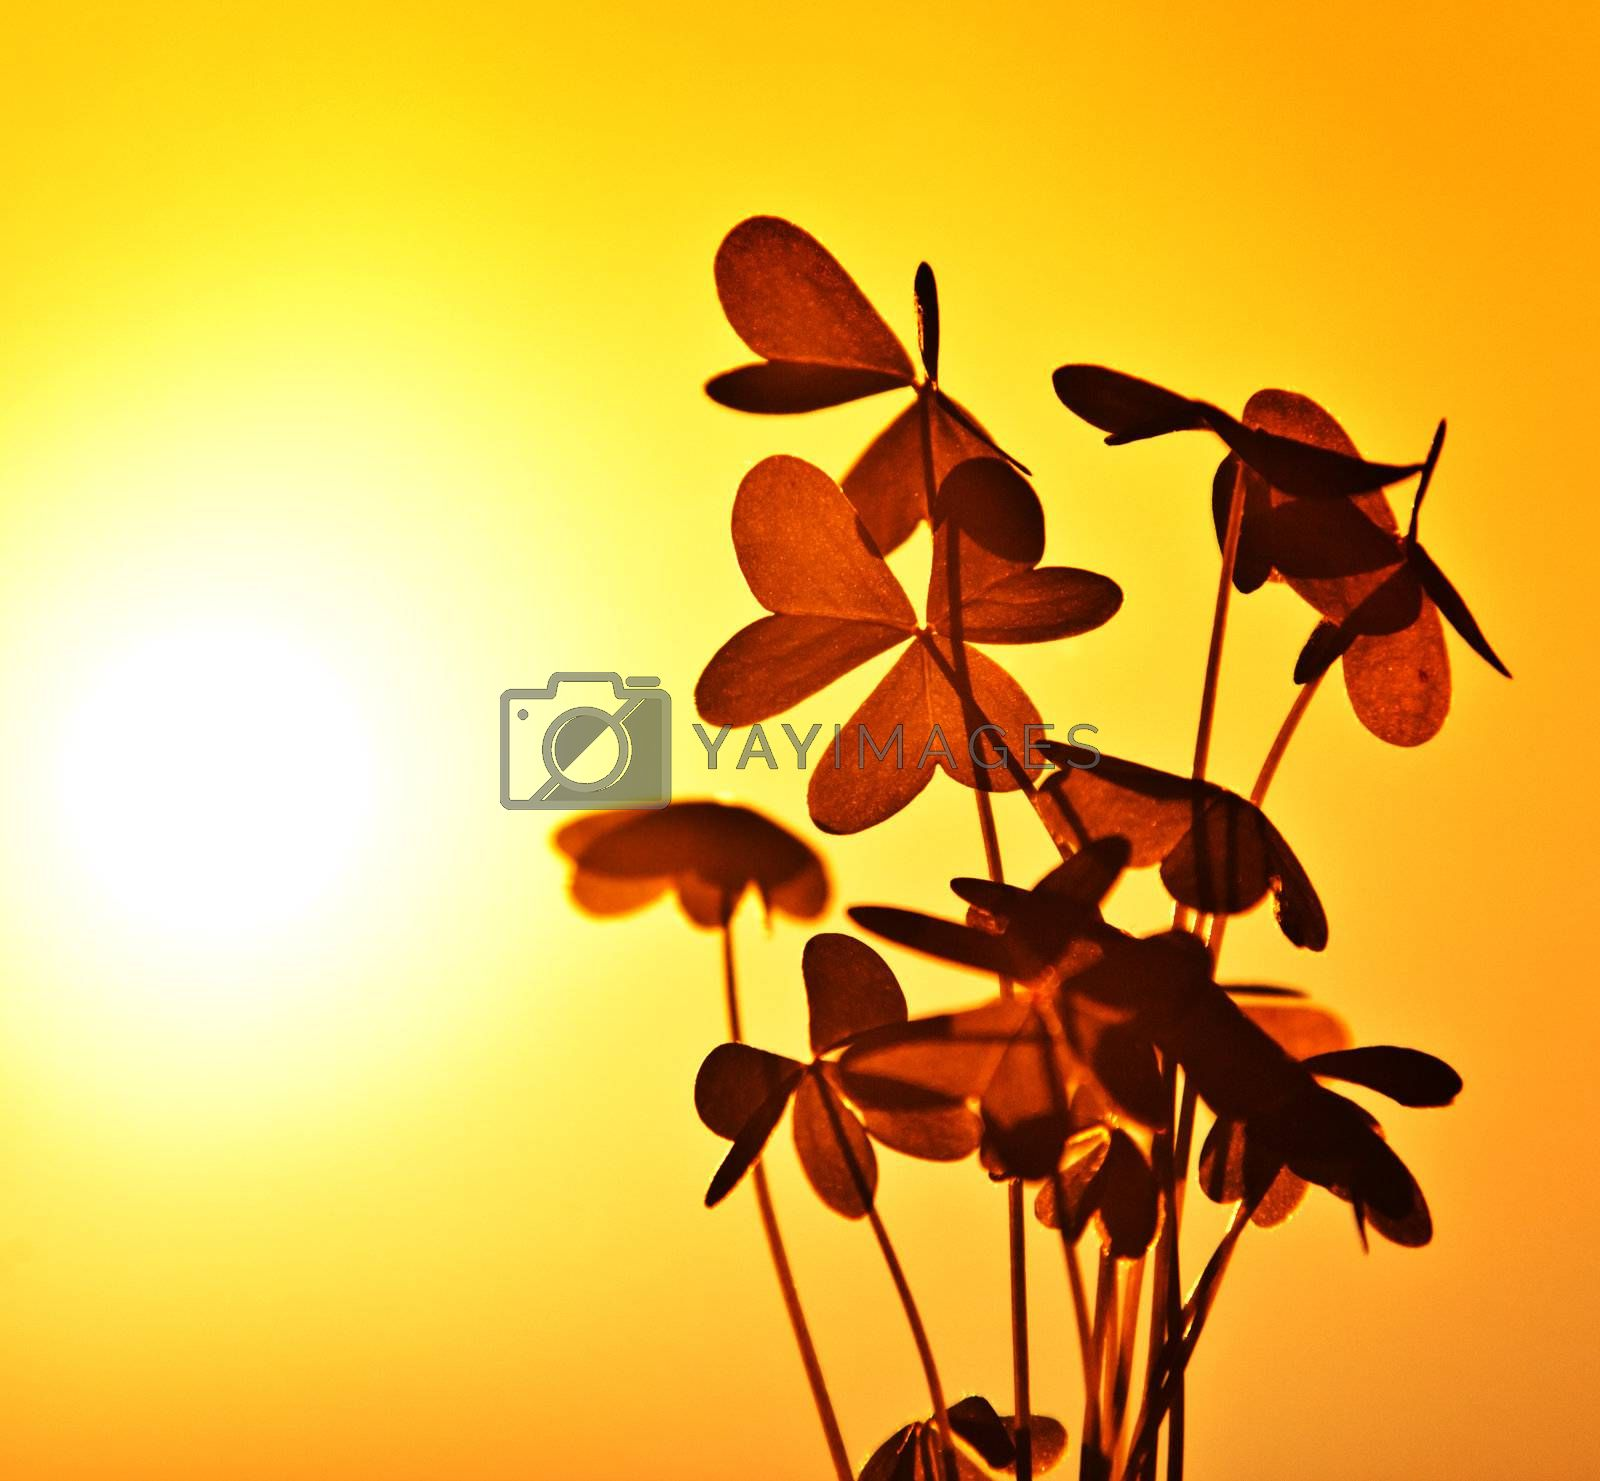 Clover at sunset, silhouette of shamrock plant over warm yellow sky background, abstract floral image, spring nature